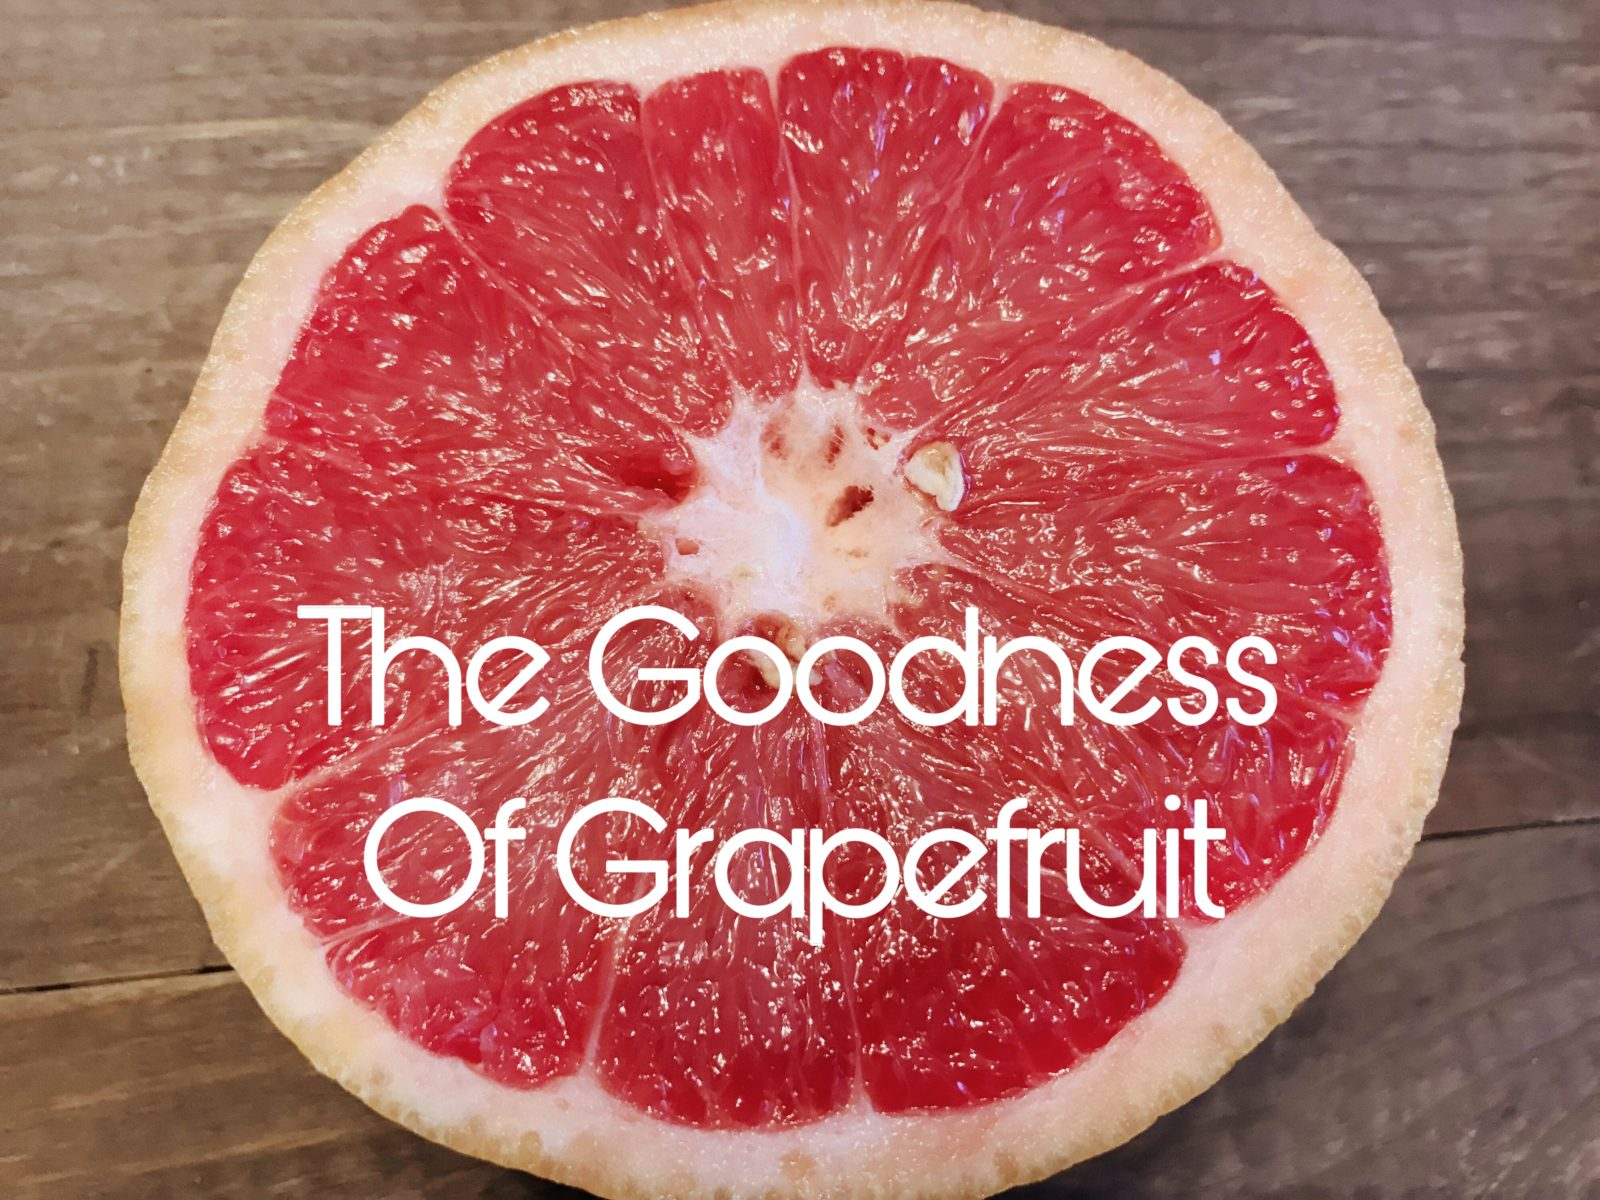 The Goodness of Grapefruit